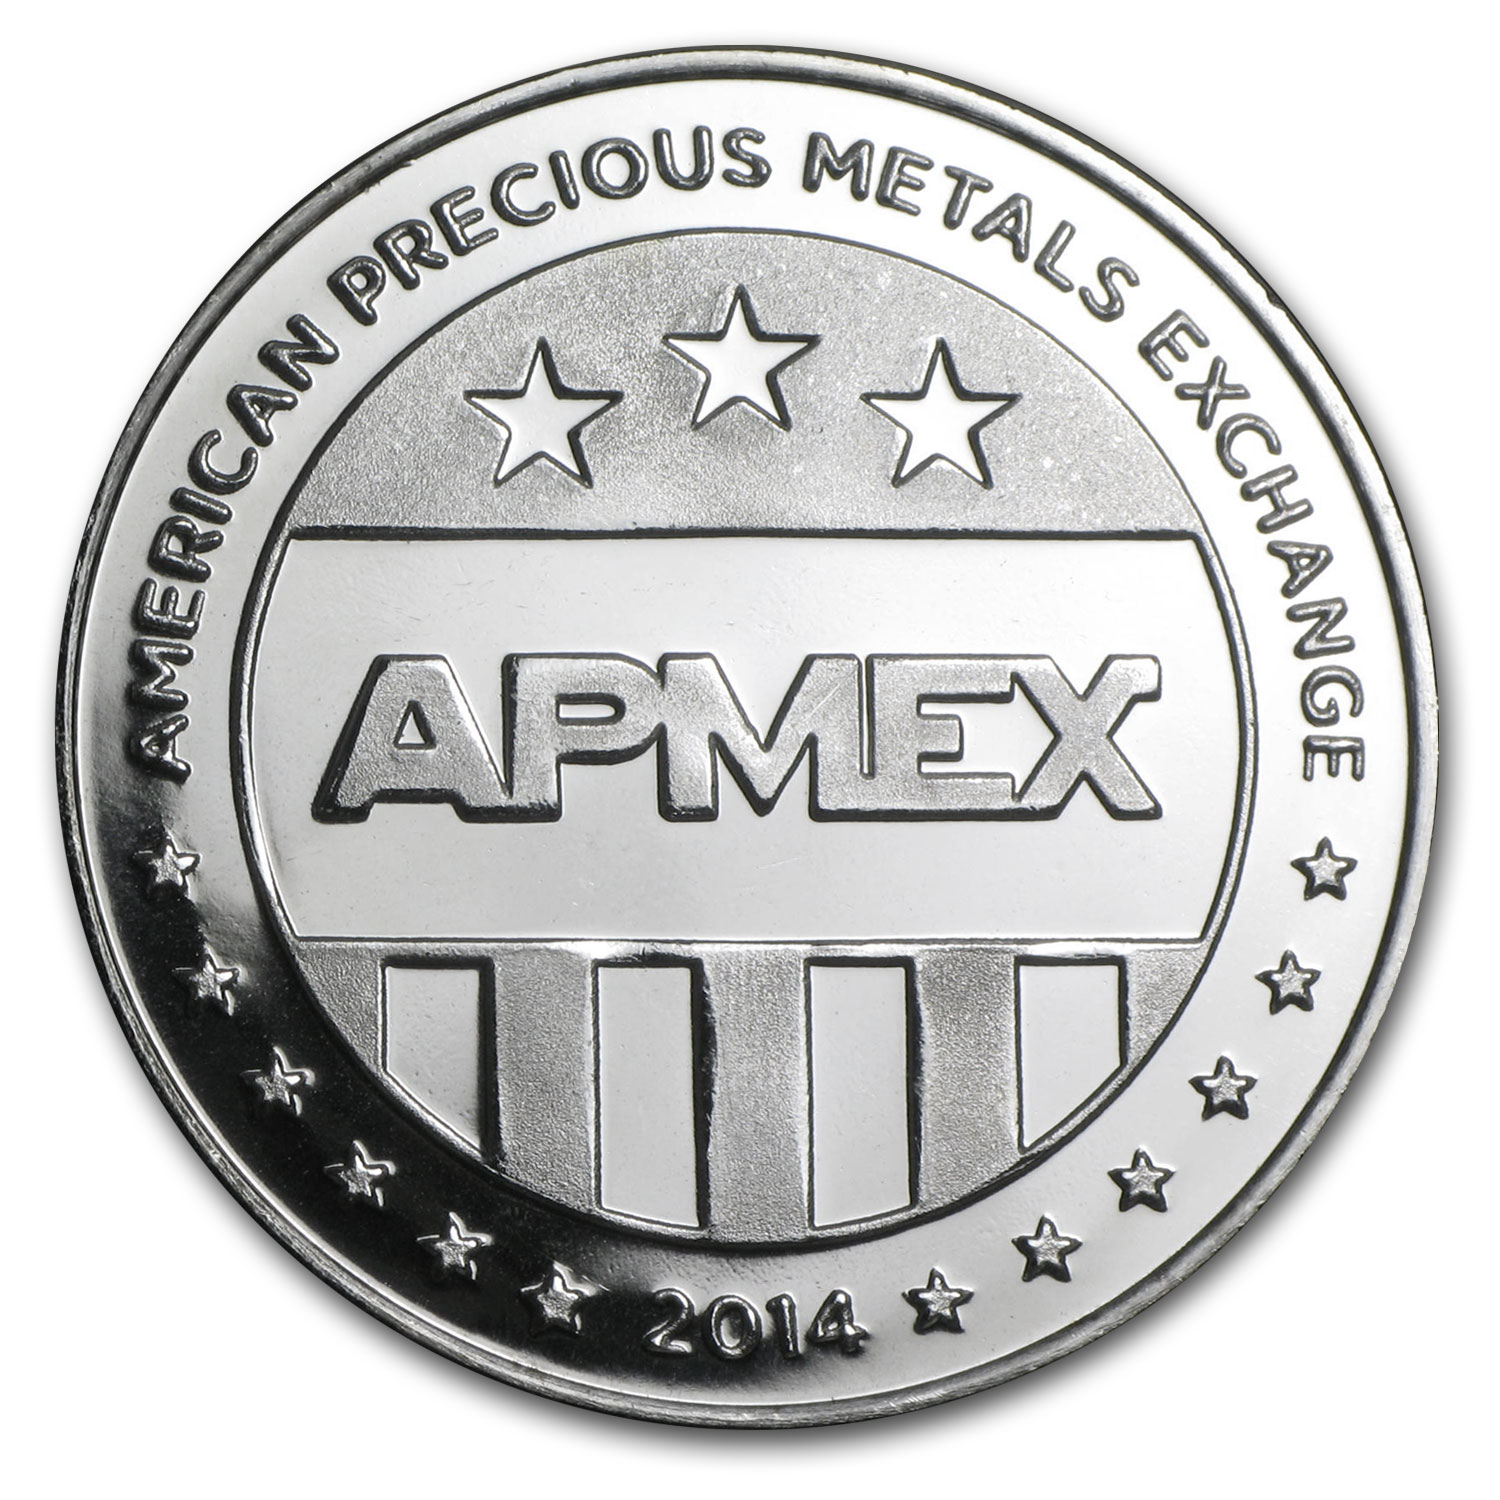 1 oz Silver Rounds - APMEX (2014 Eagle Eye)